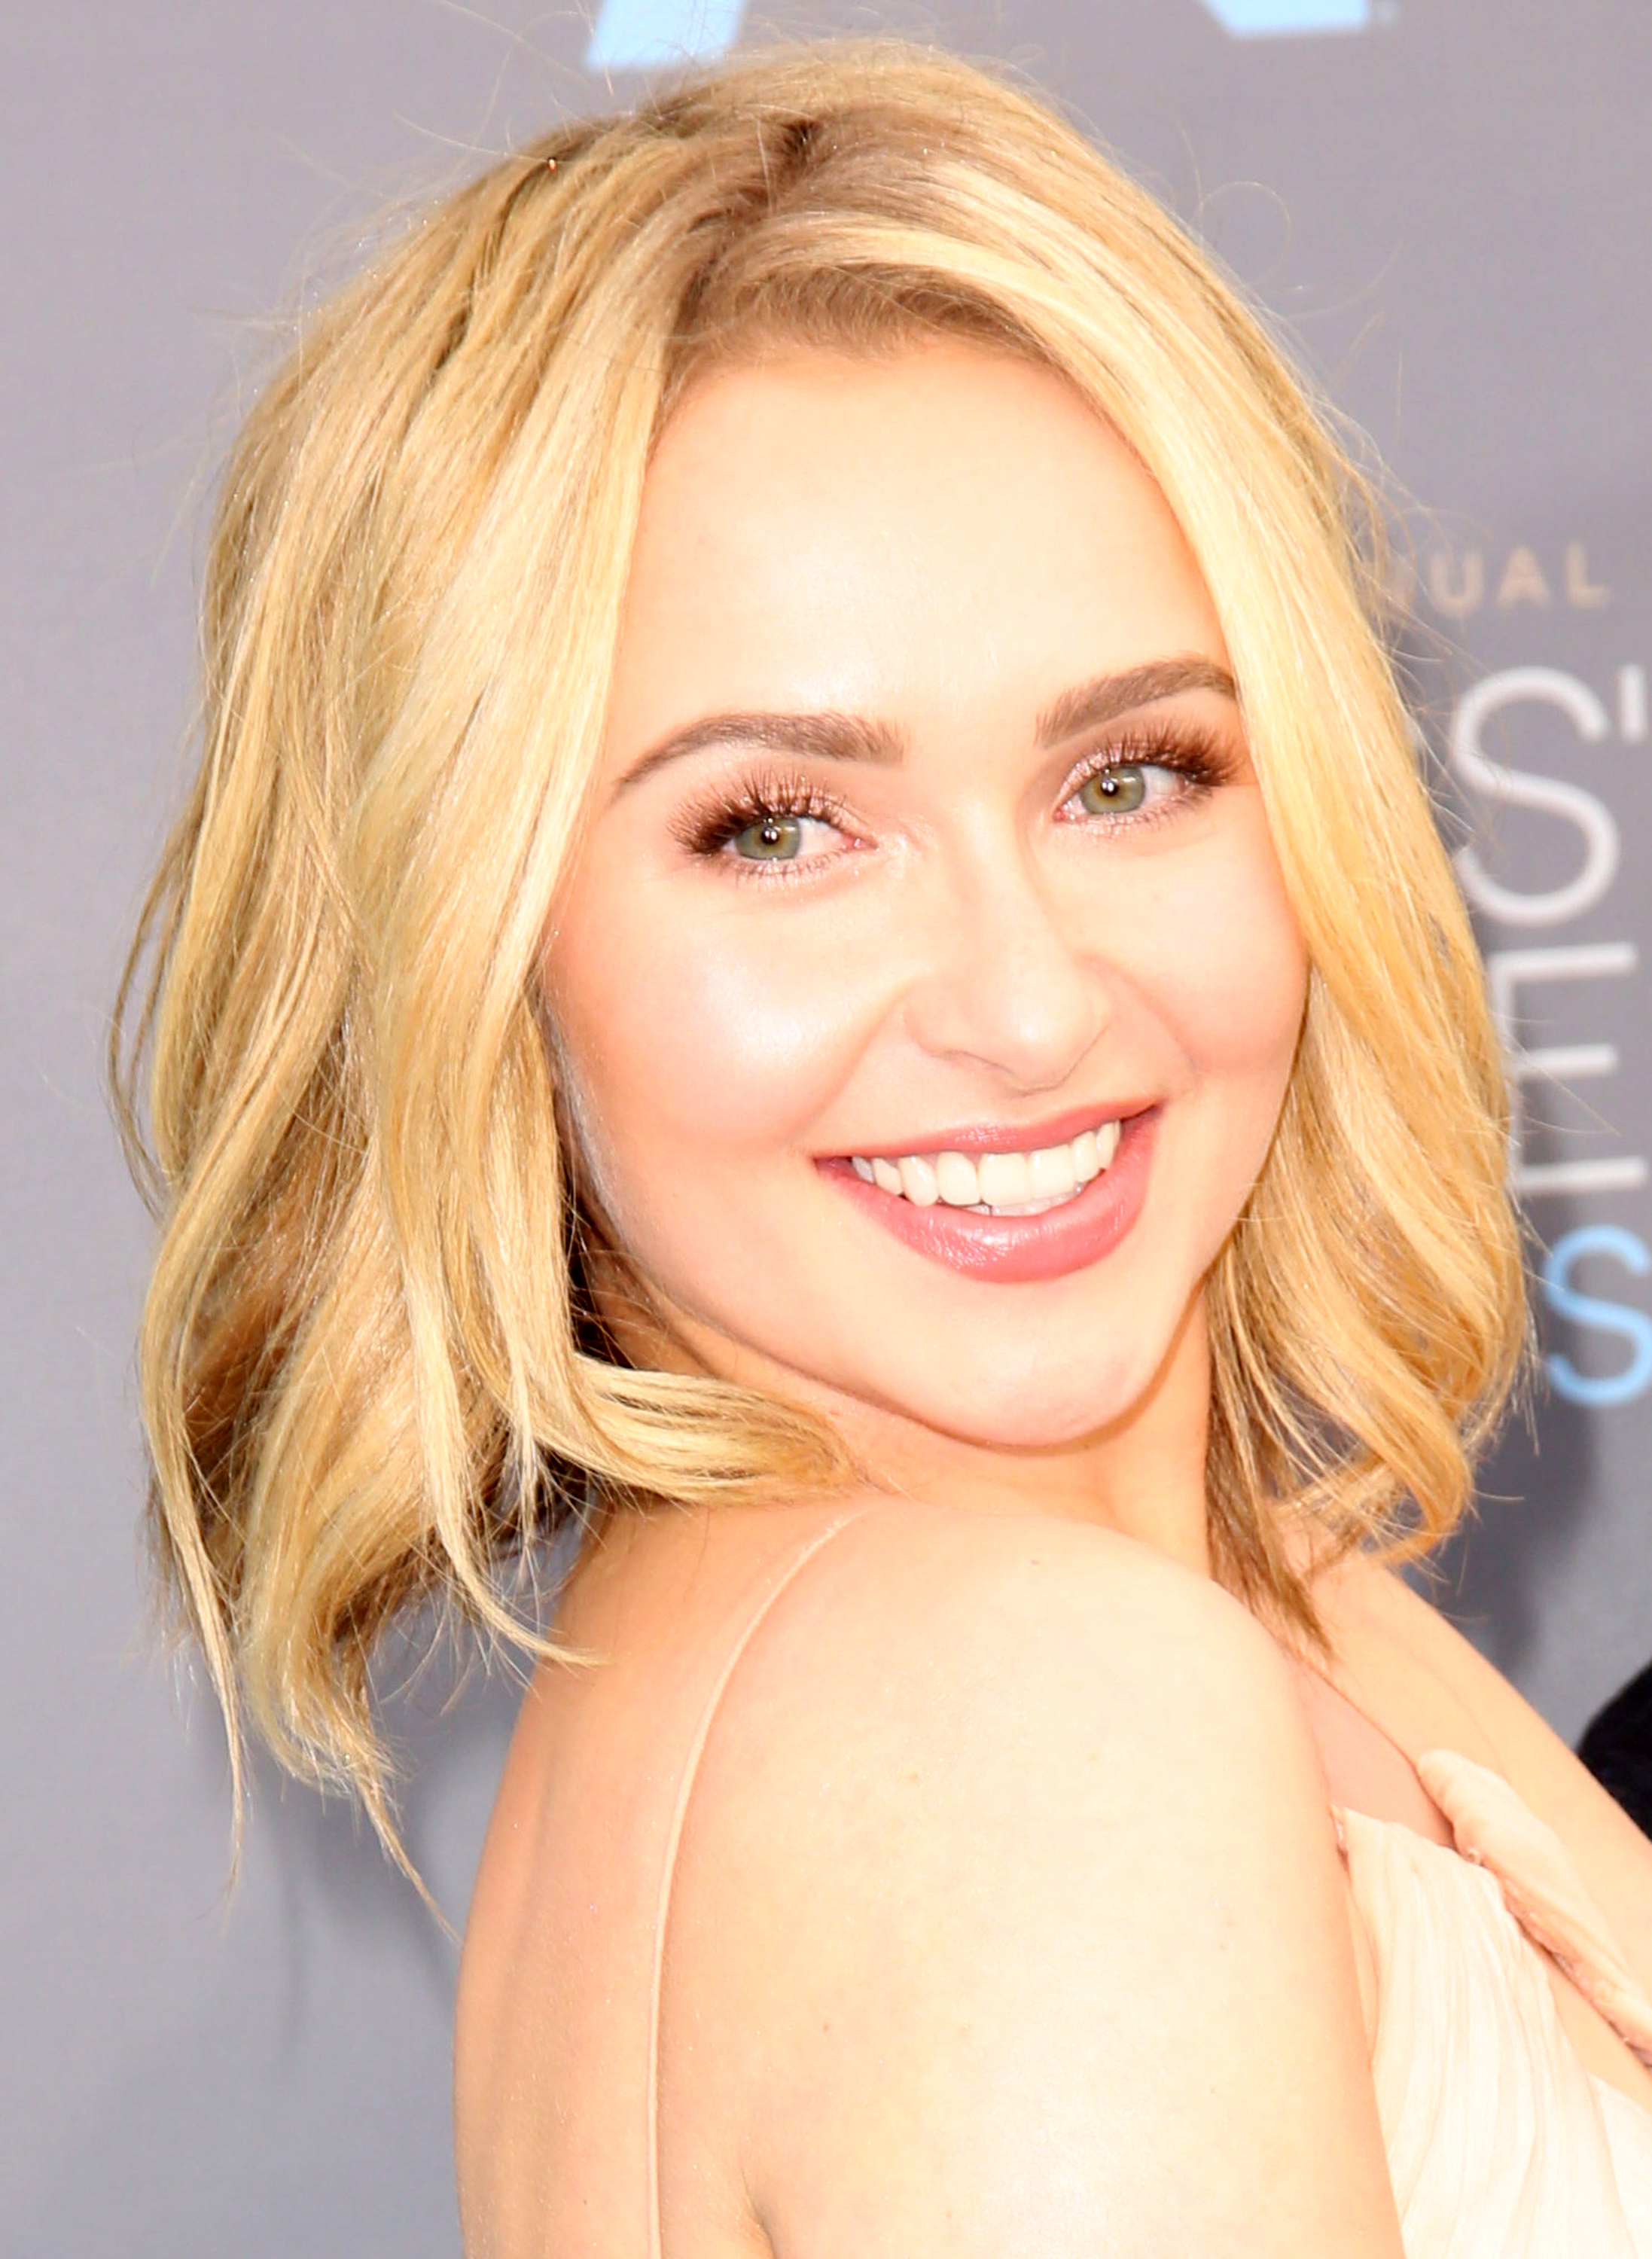 Celebrities attend The 21st Annual Critics' Choice Awards at Barker Hangar.  Featuring: Hayden Panettiere Where: Los Angeles, California, United States When: 17 Jan 2016 Credit: Brian To/WENN.com